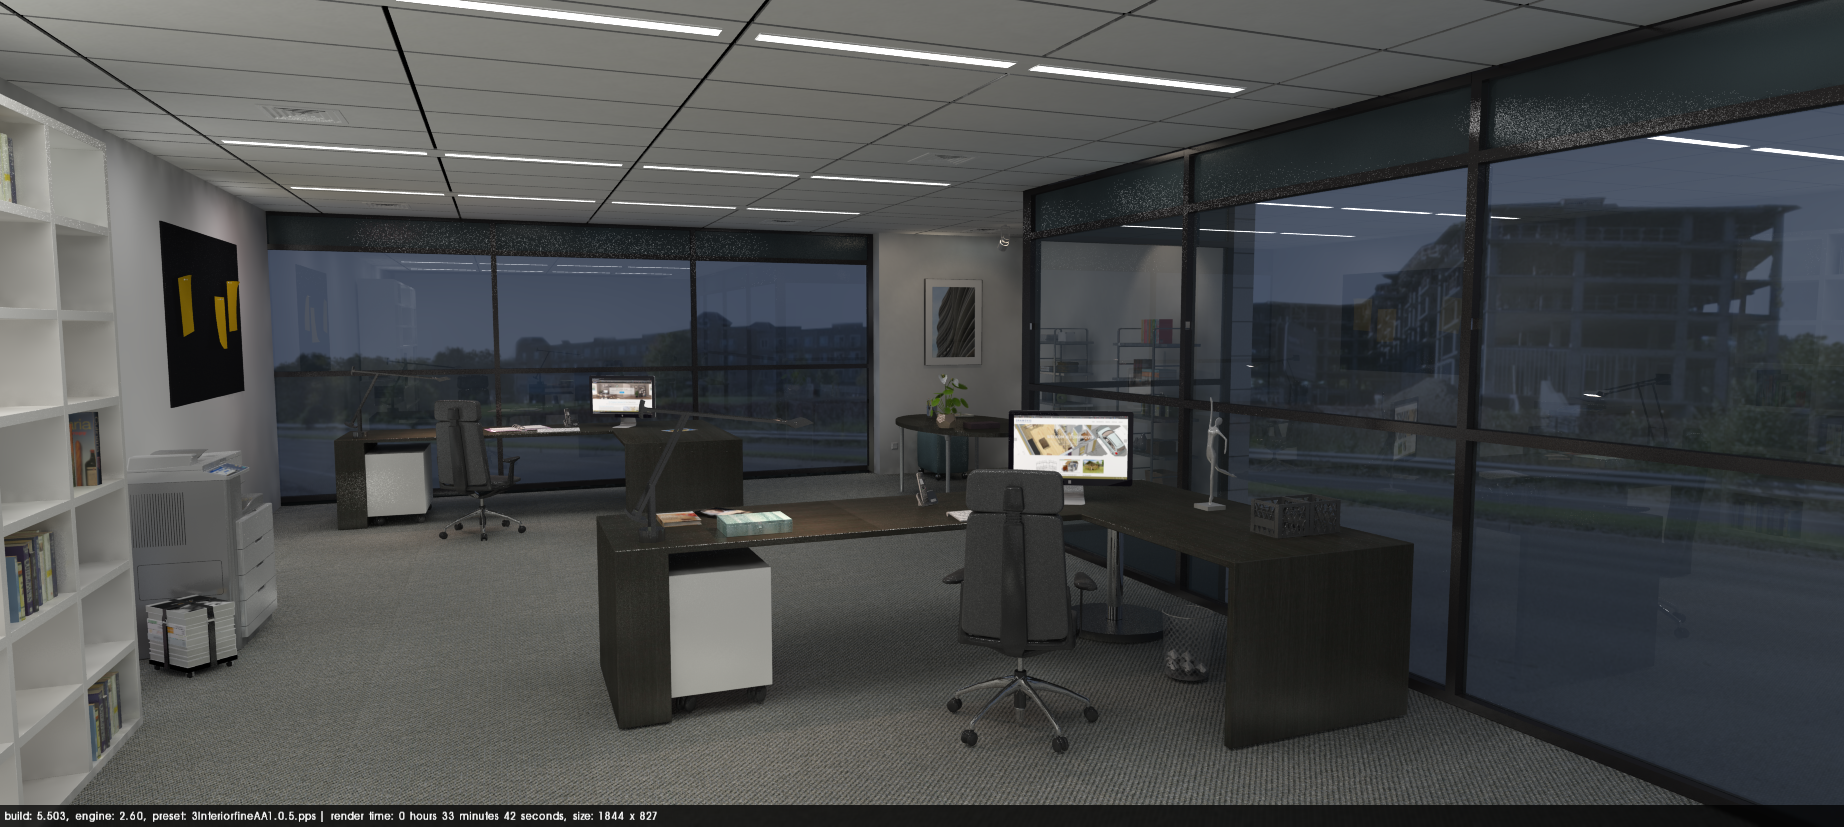 Interieur-office-v6-no-exterior-nolights-butLEM 2018-10-30 12243700000.png